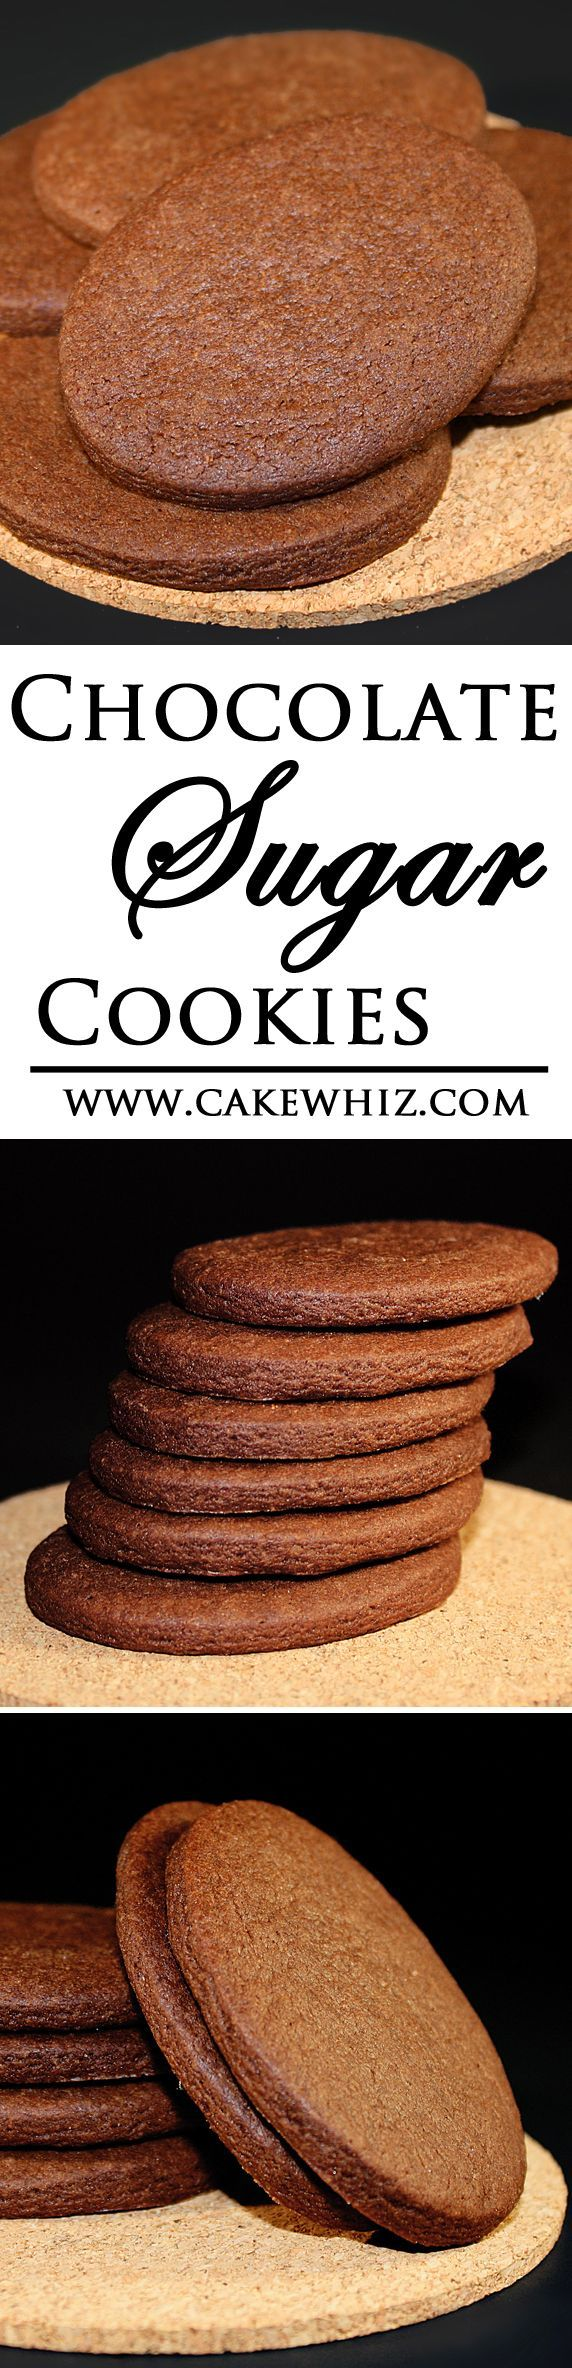 CHOCOLATE SUGAR COOKIES... these lovely cookies have the texture of the classic, crispy sugar cookies but they are packed with intense chocolate flavor From http://cakewhiz.com